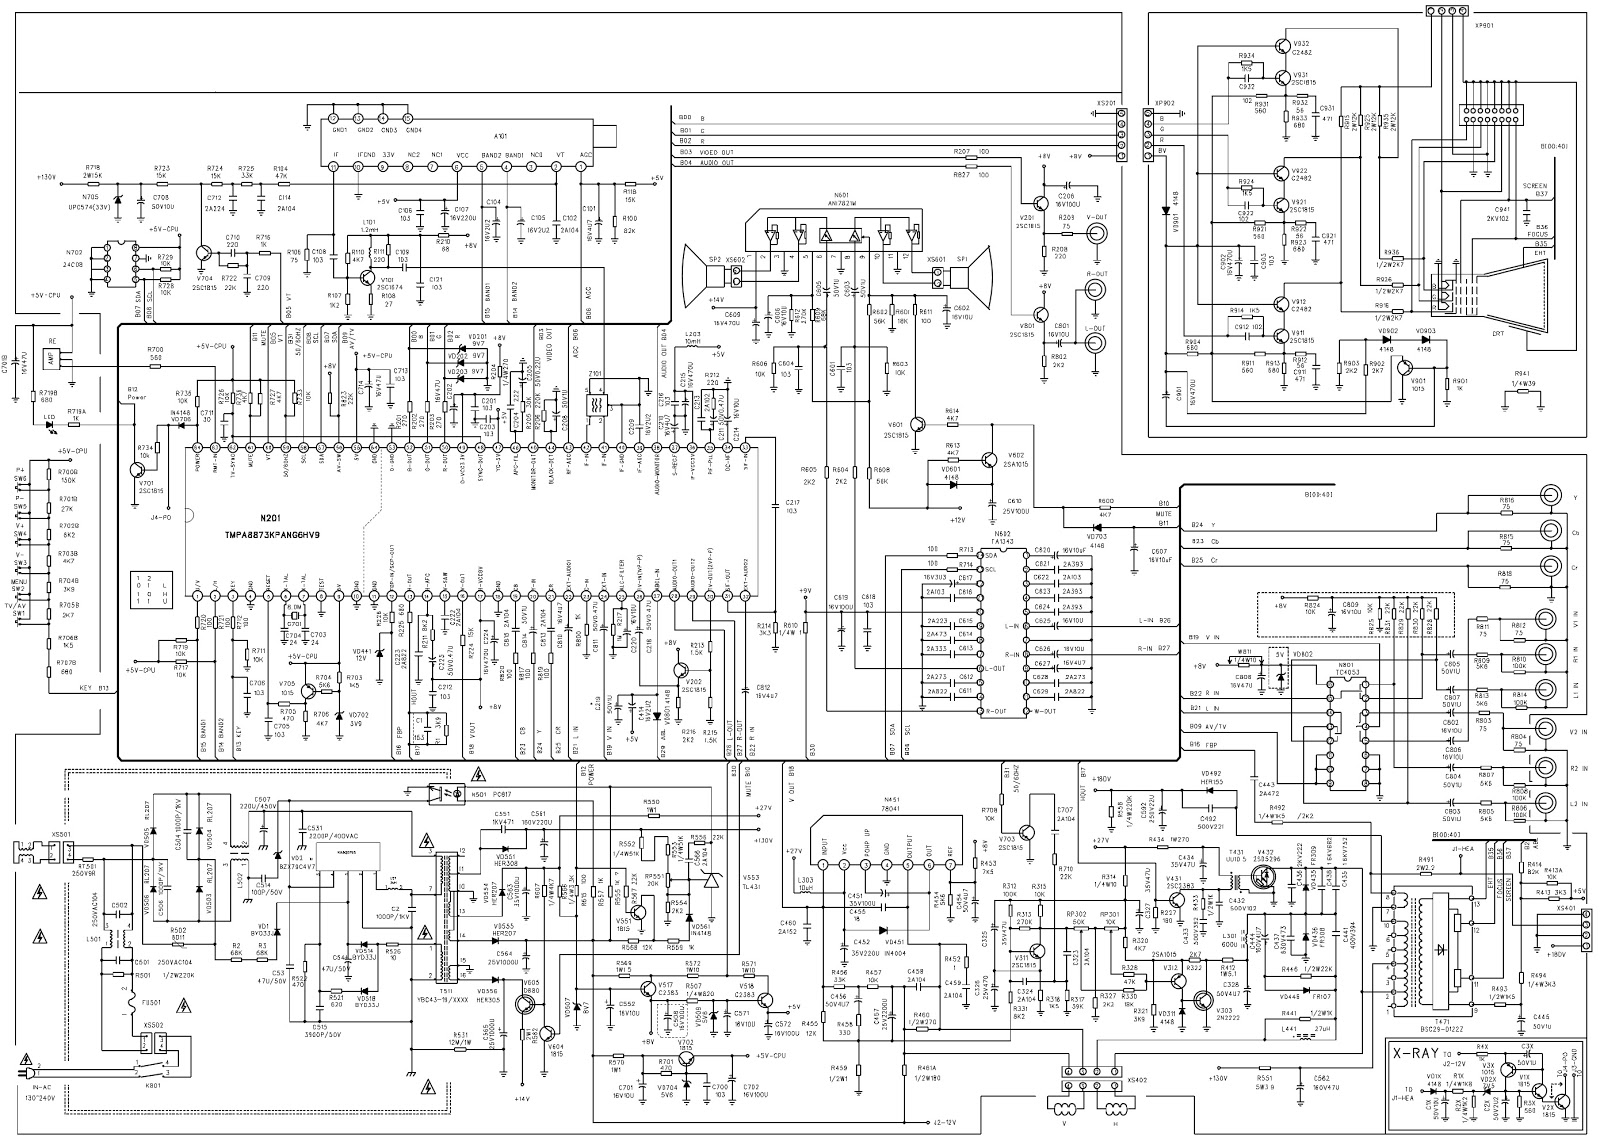 colour tv circuit diagram tmpa8873kpang6hv9 syscon chroma ic palntsc crt tv circuit diagram and pwb schematic diagrams [ 1600 x 1141 Pixel ]